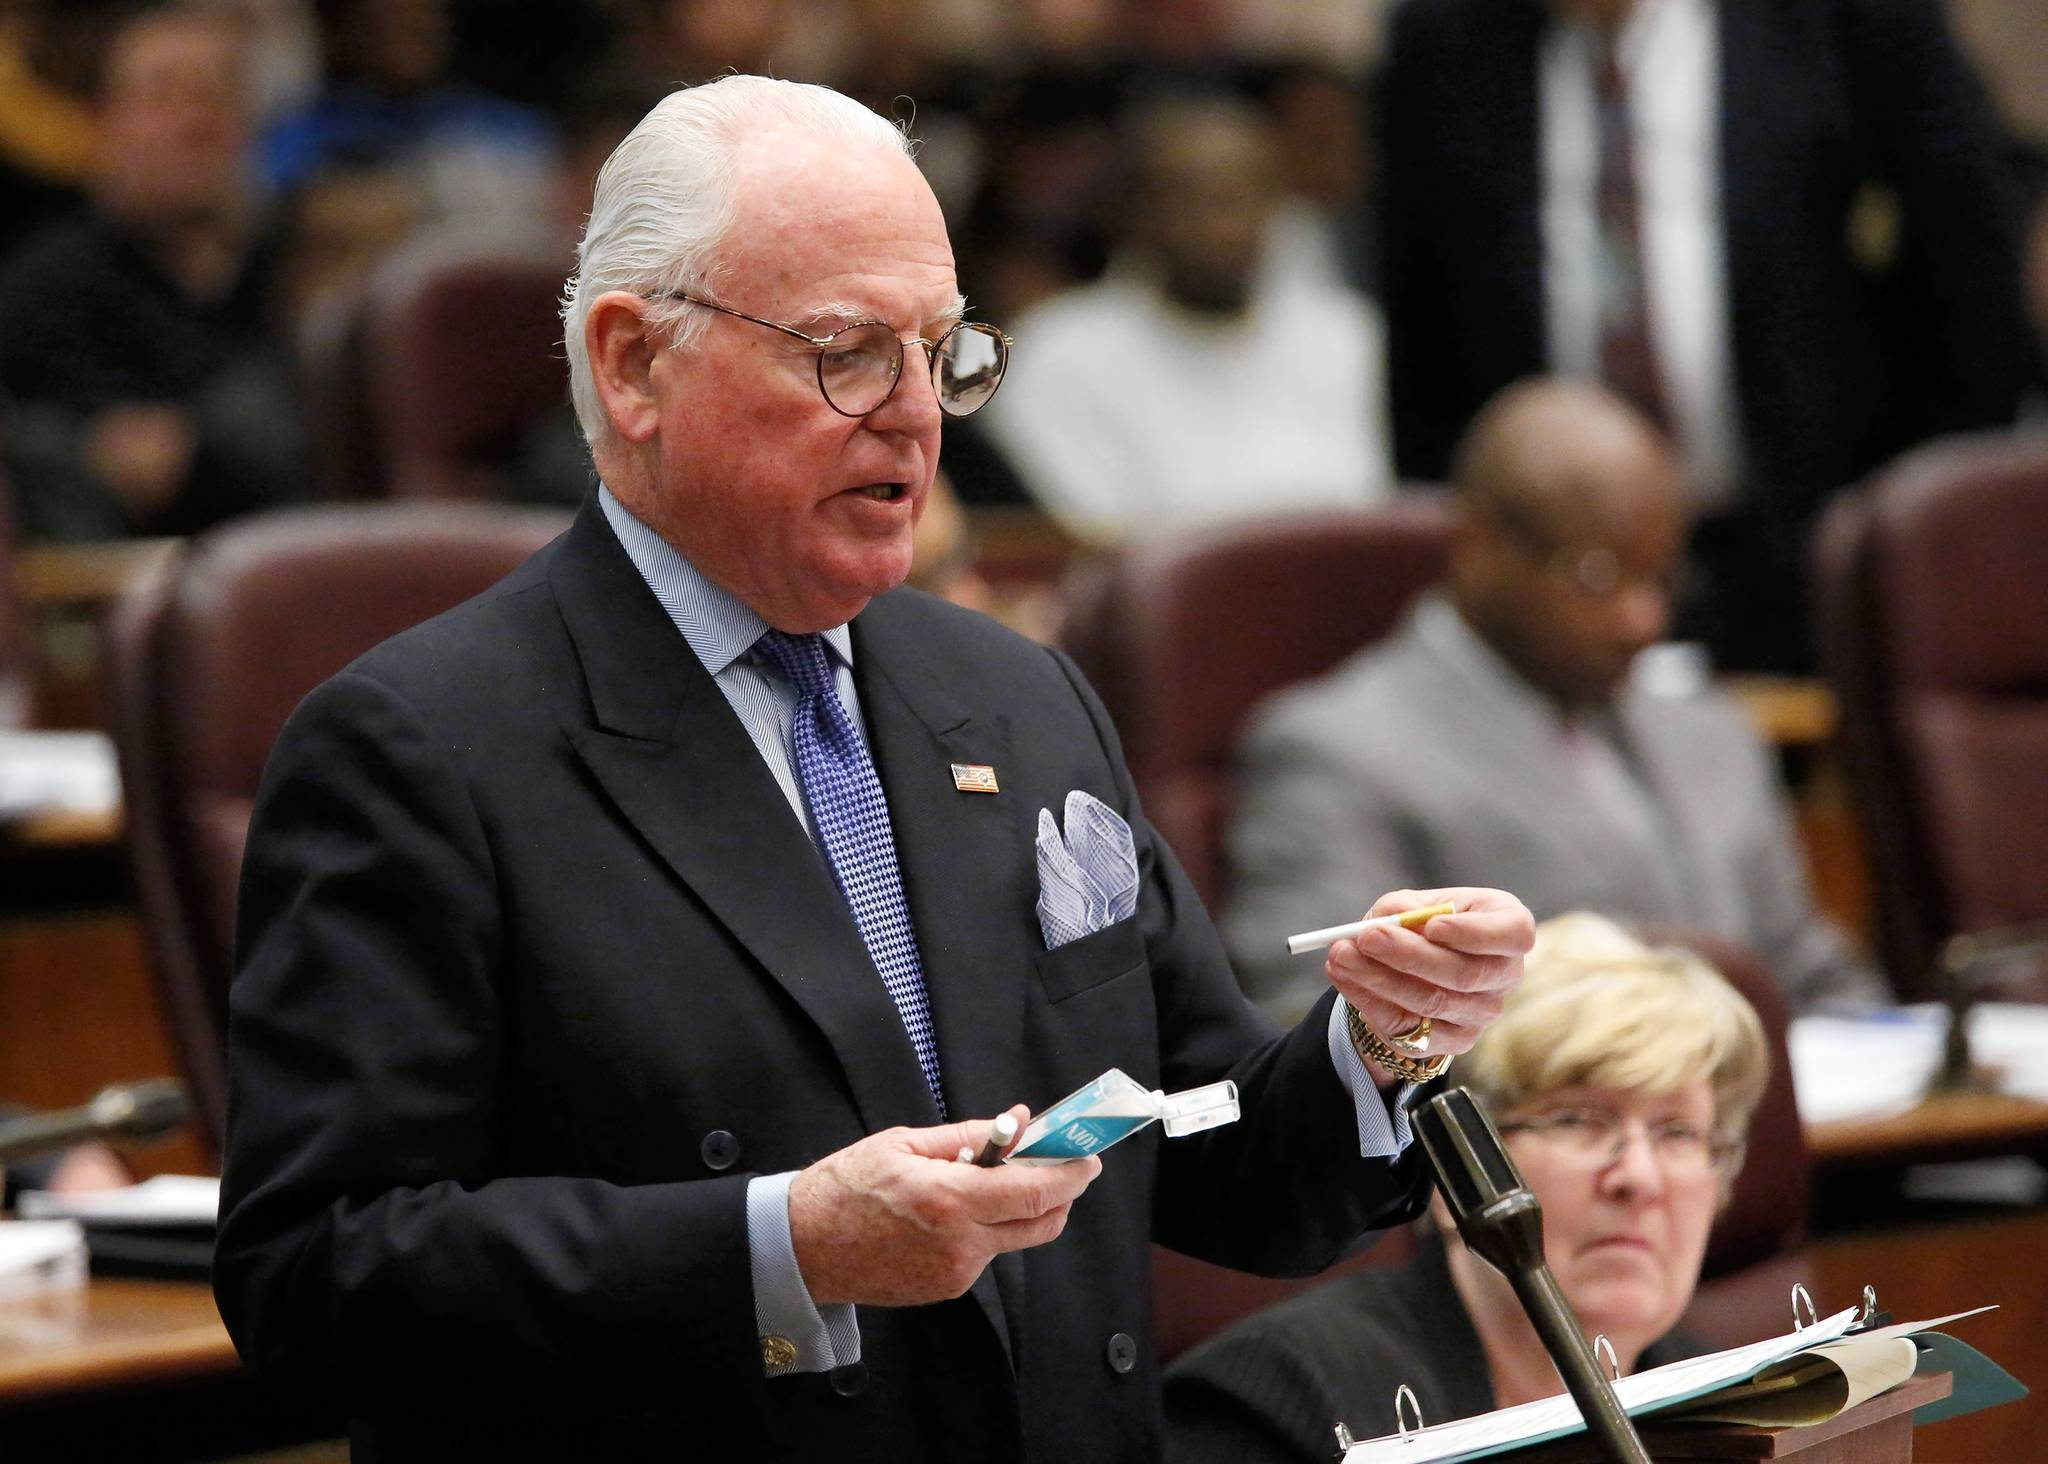 Ald. Edward Burke, 14th, holds an NJOY electronic cigarette during a discussion regarding an ordinance brought to the City Council banning the electronic cigarette in most indoor public places seen here at the council meeting at Chicago's City Hall. The ordinance passed with a 45-4 vote.